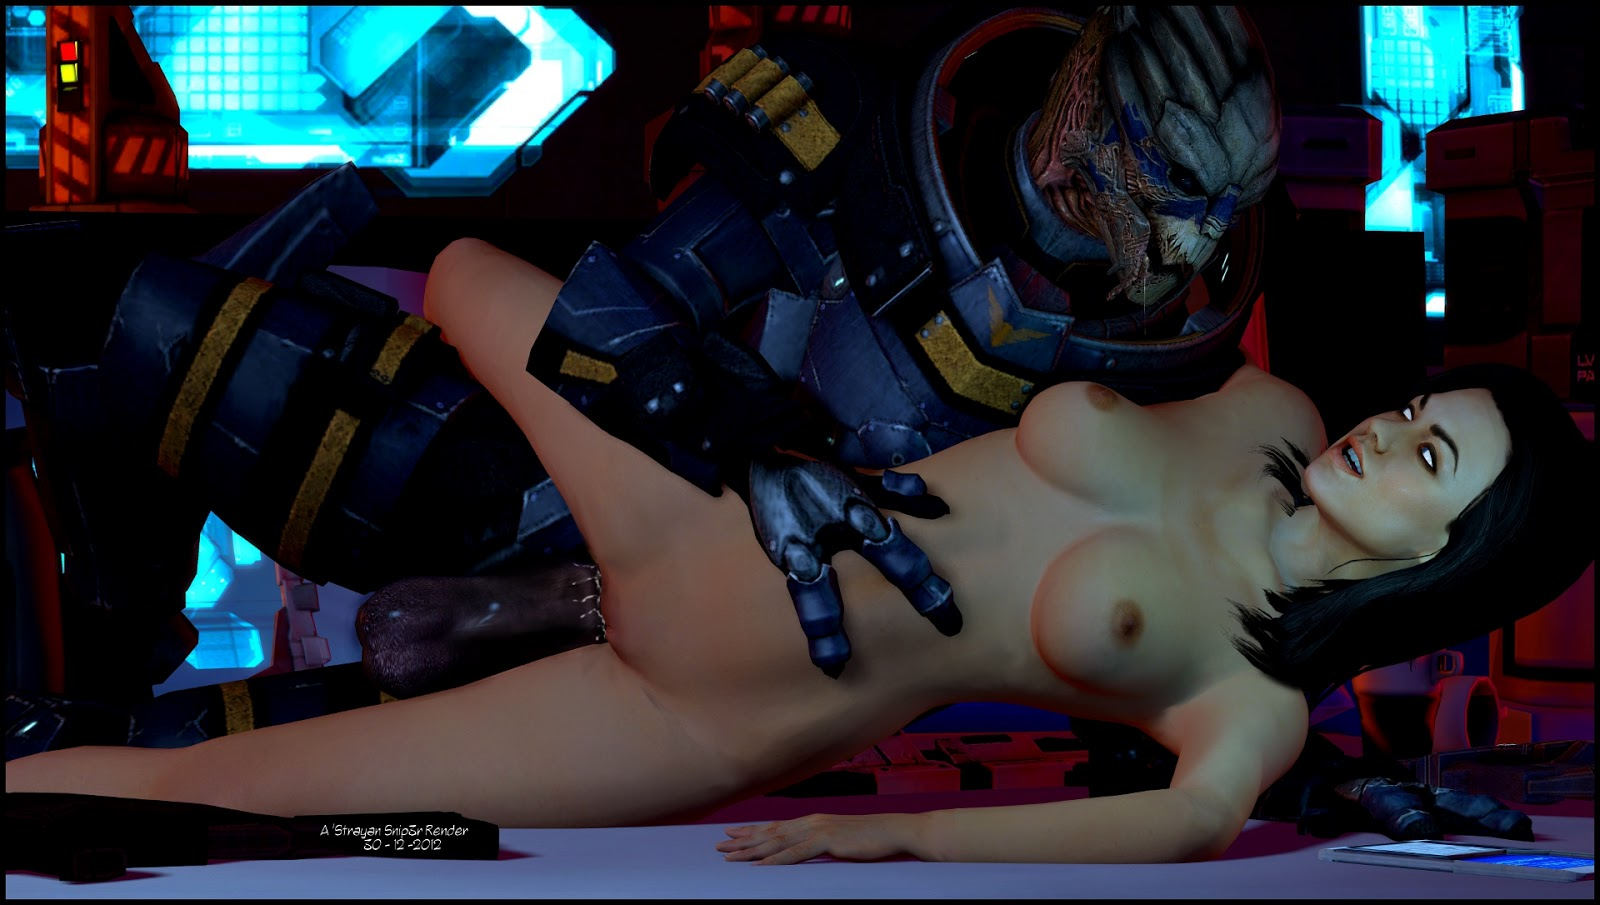 Mass effect female character porn mod hentia video